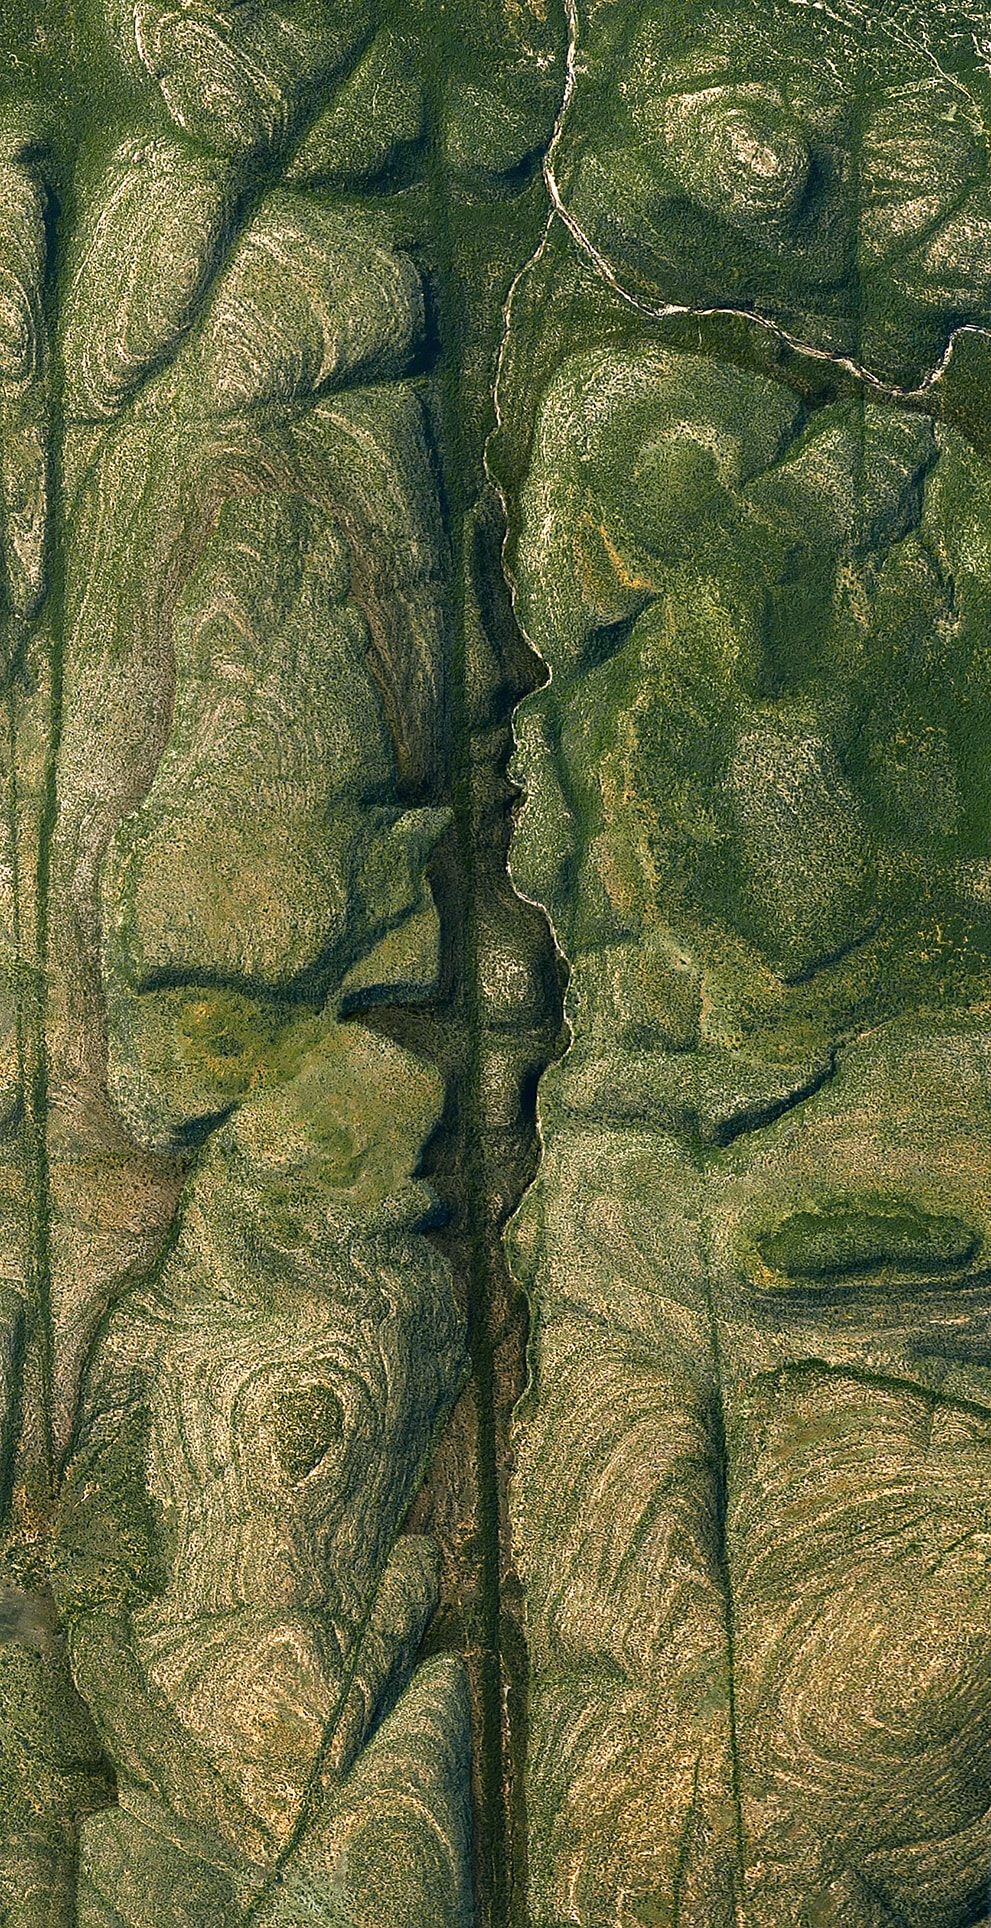 Earth Portrait 18 South Africa, 2015, cm 70×36, 1/9